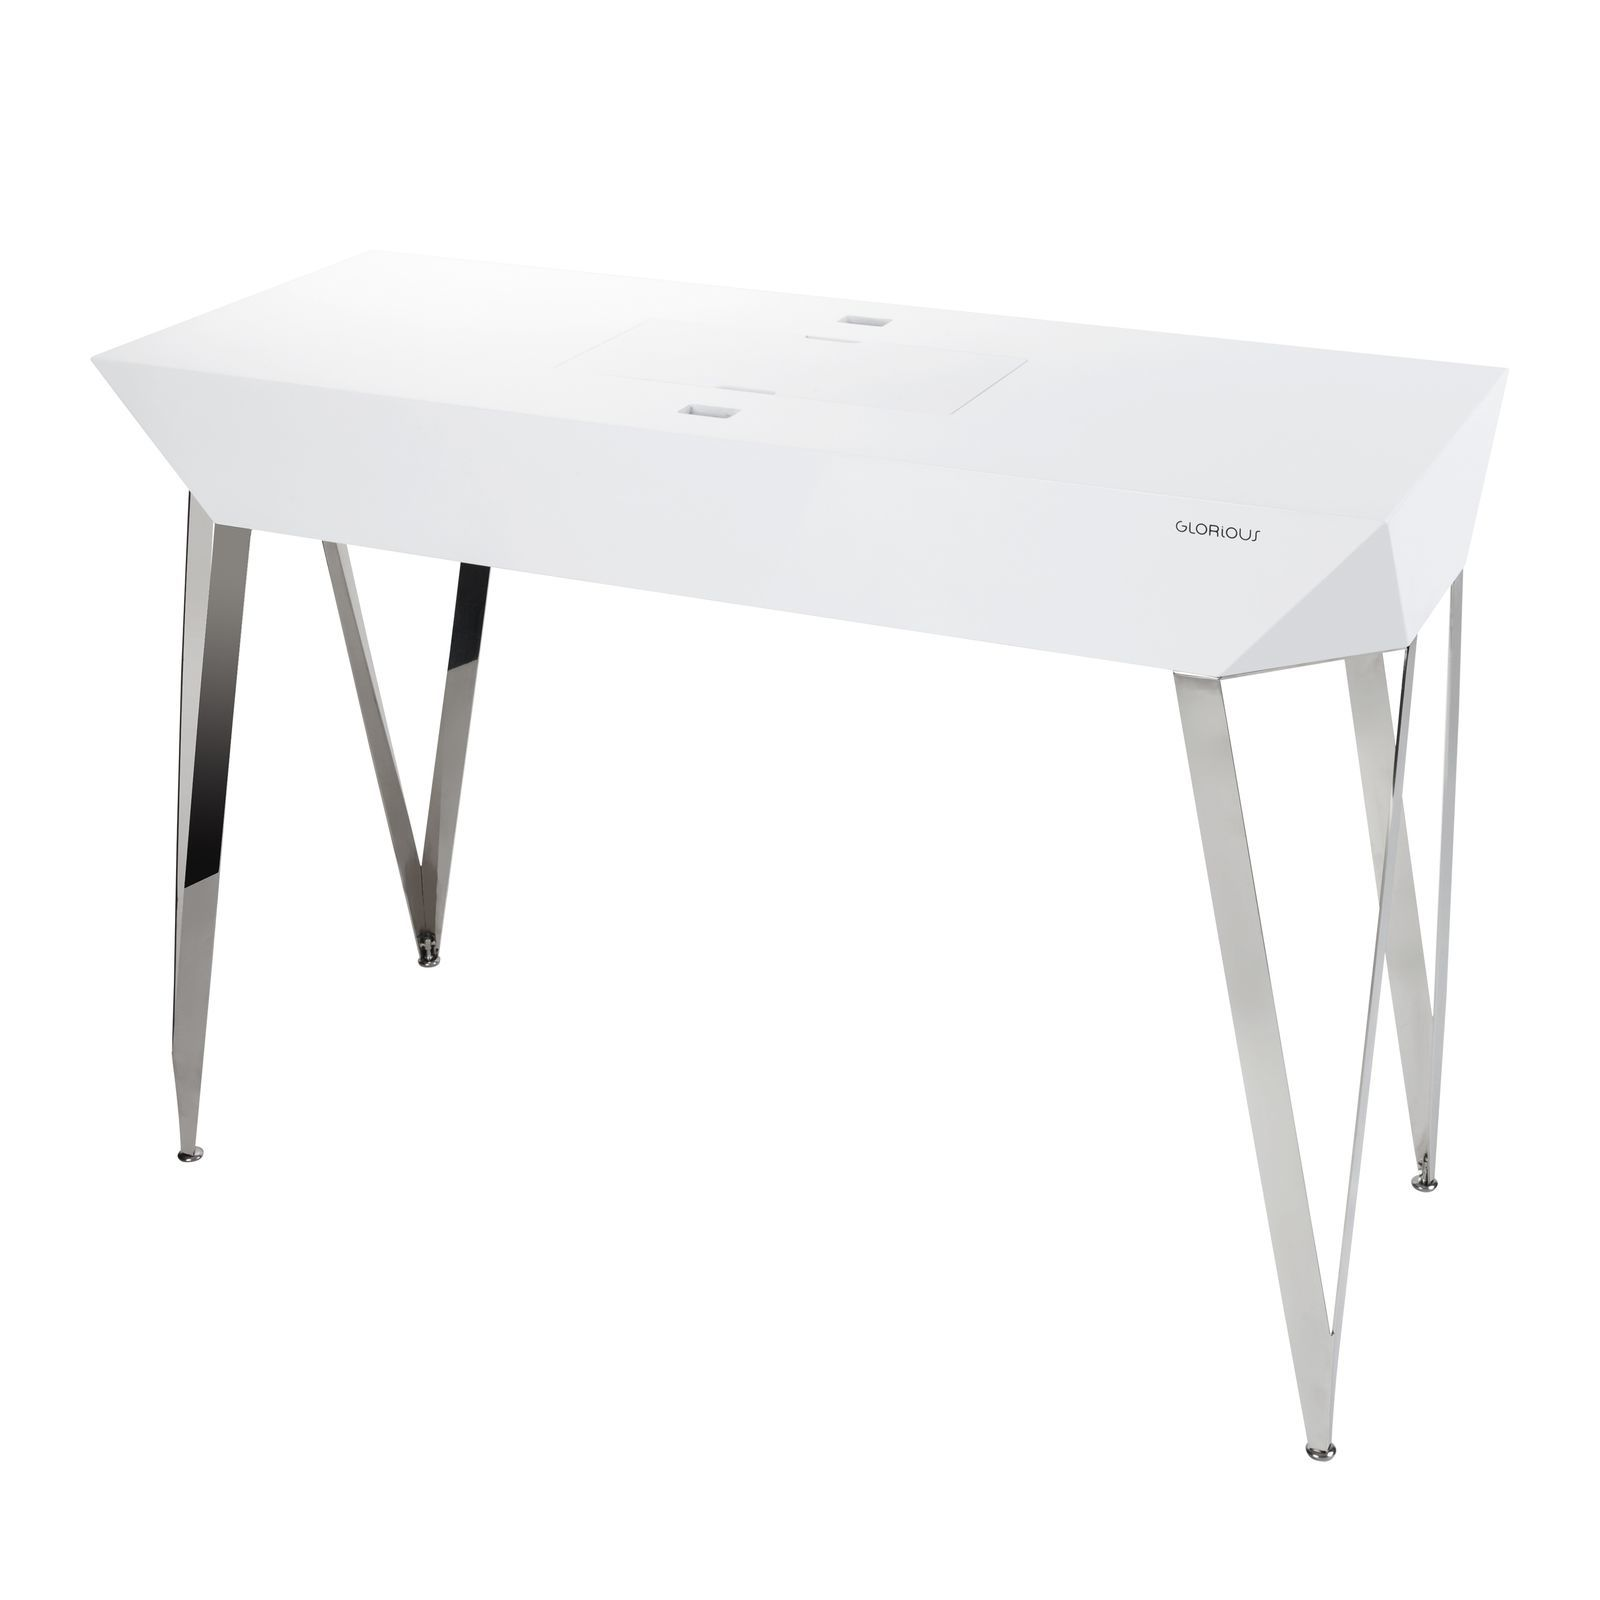 Glorious Glorious Diamond White DJ-Table 125 x 90 x 48 cm Изображение товара